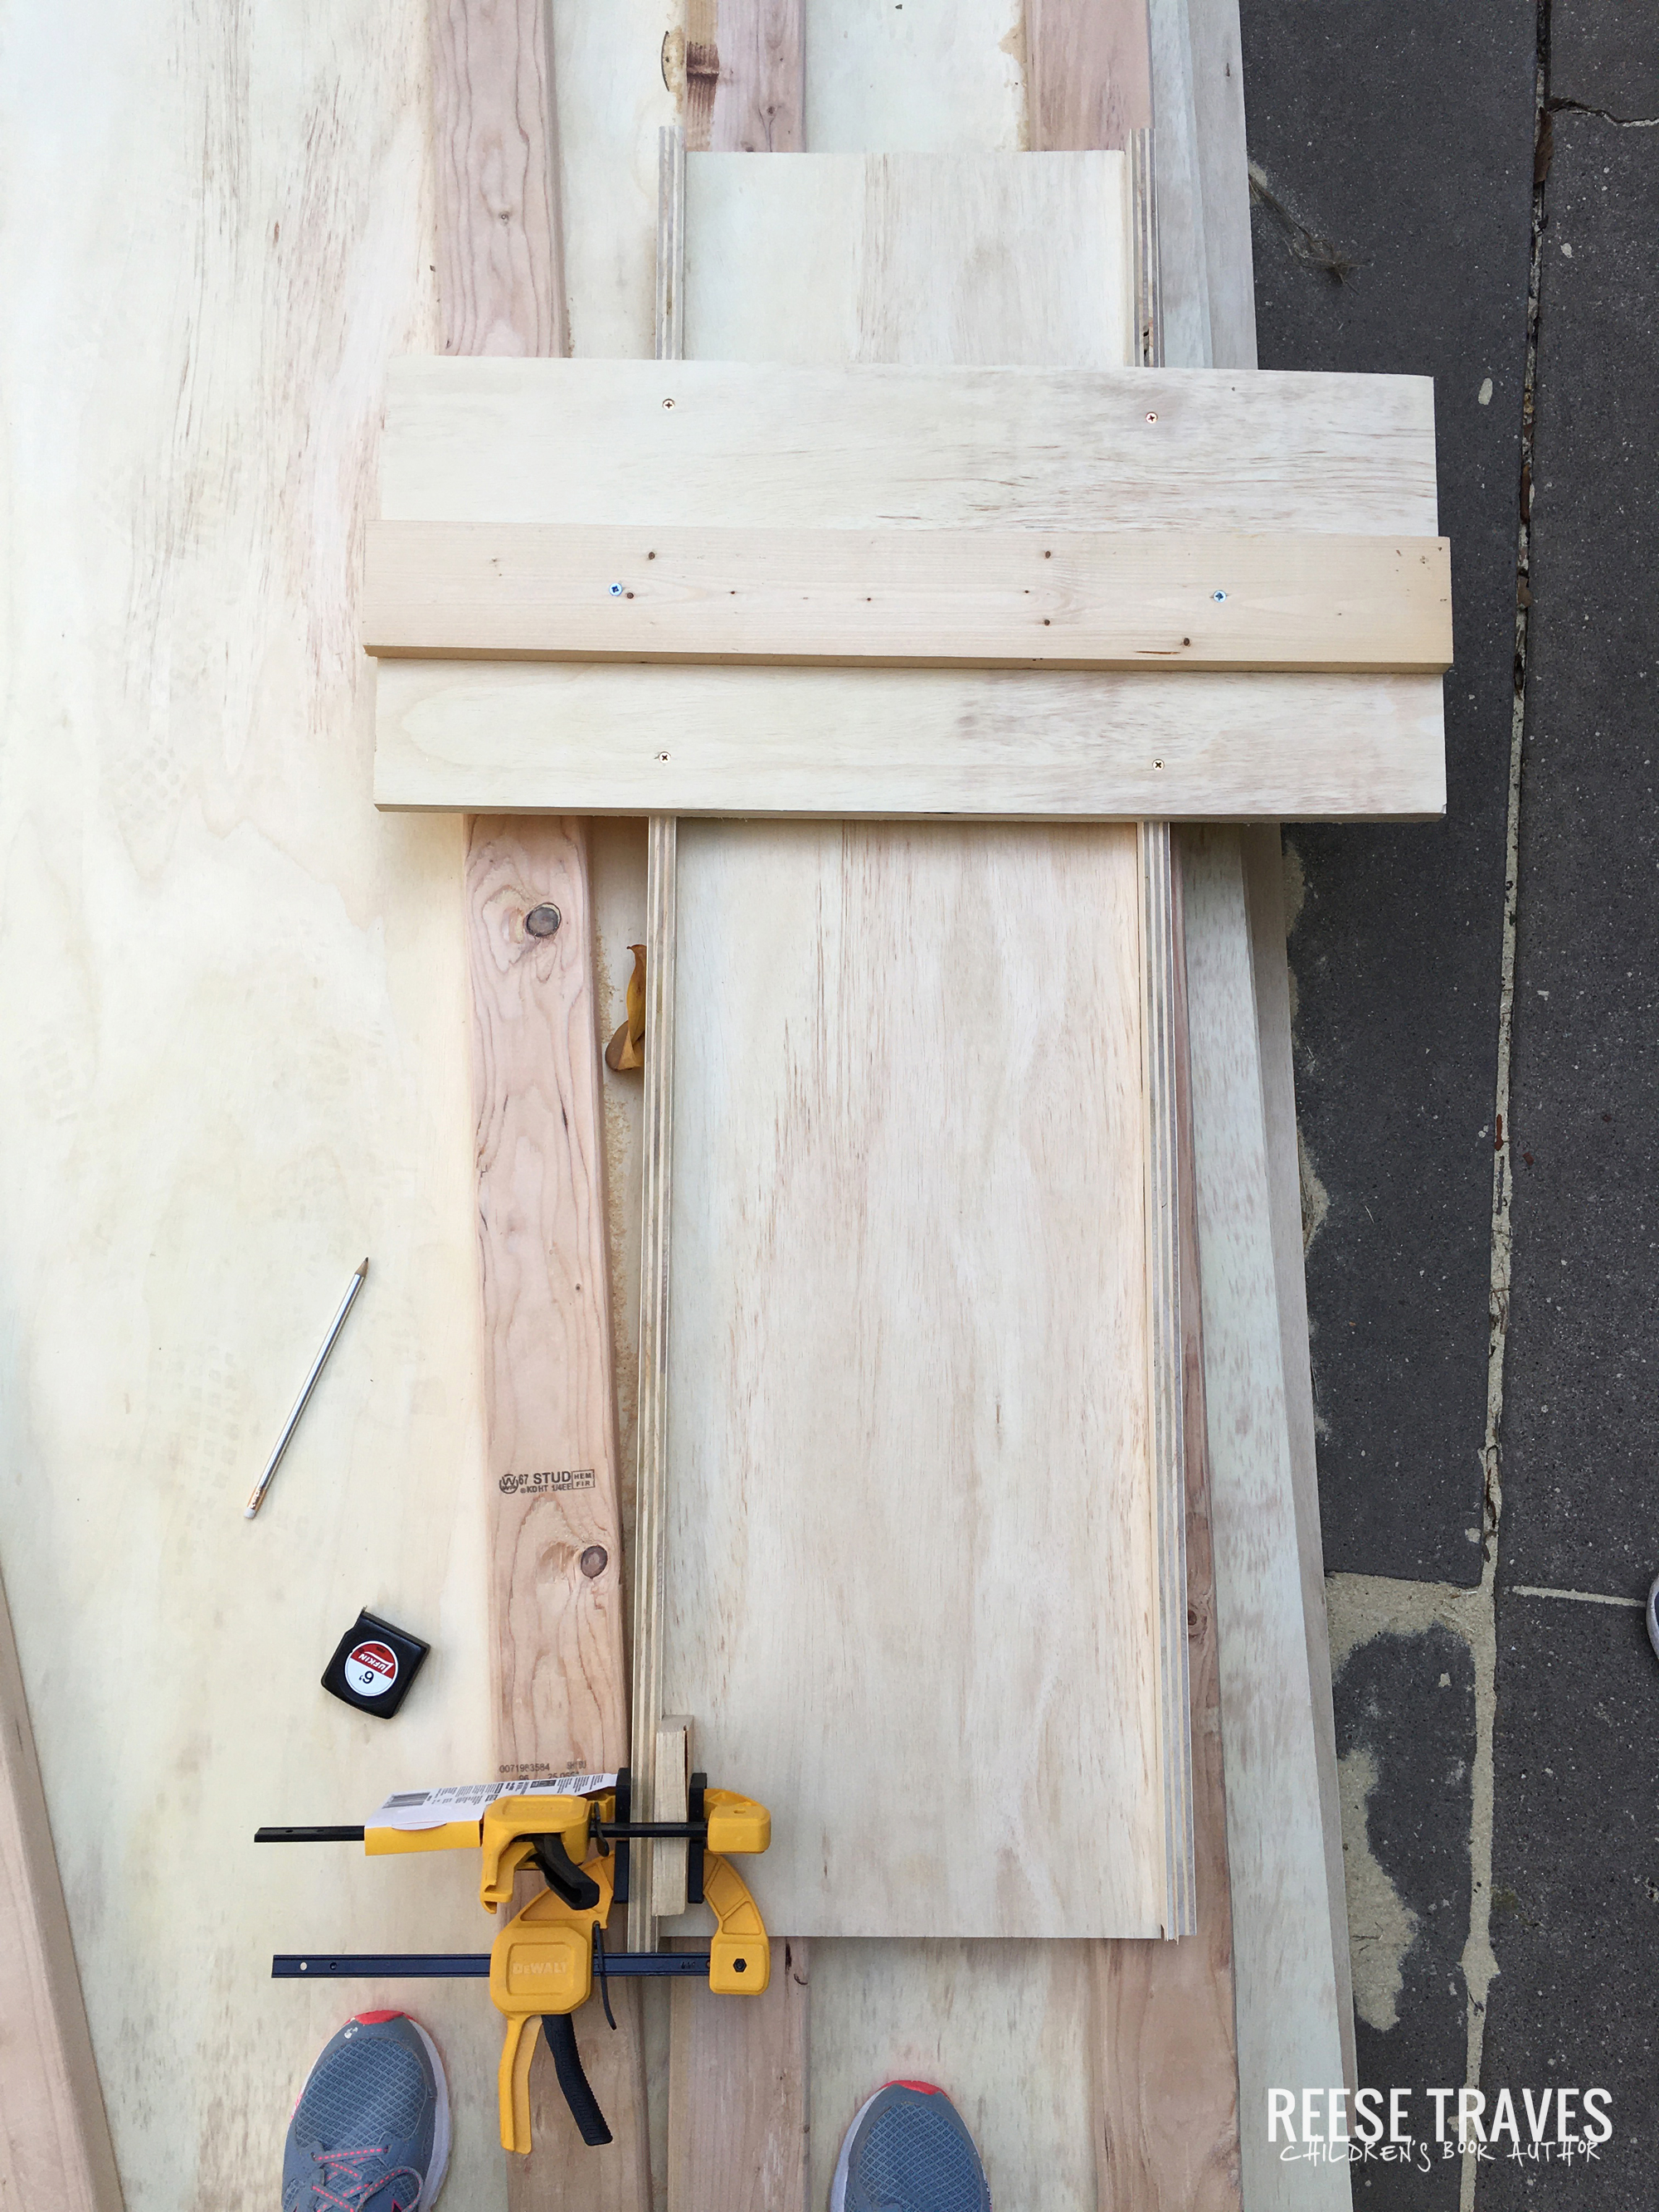 DIY jig to cut lots of wood the same length for bookshelves and stuff.